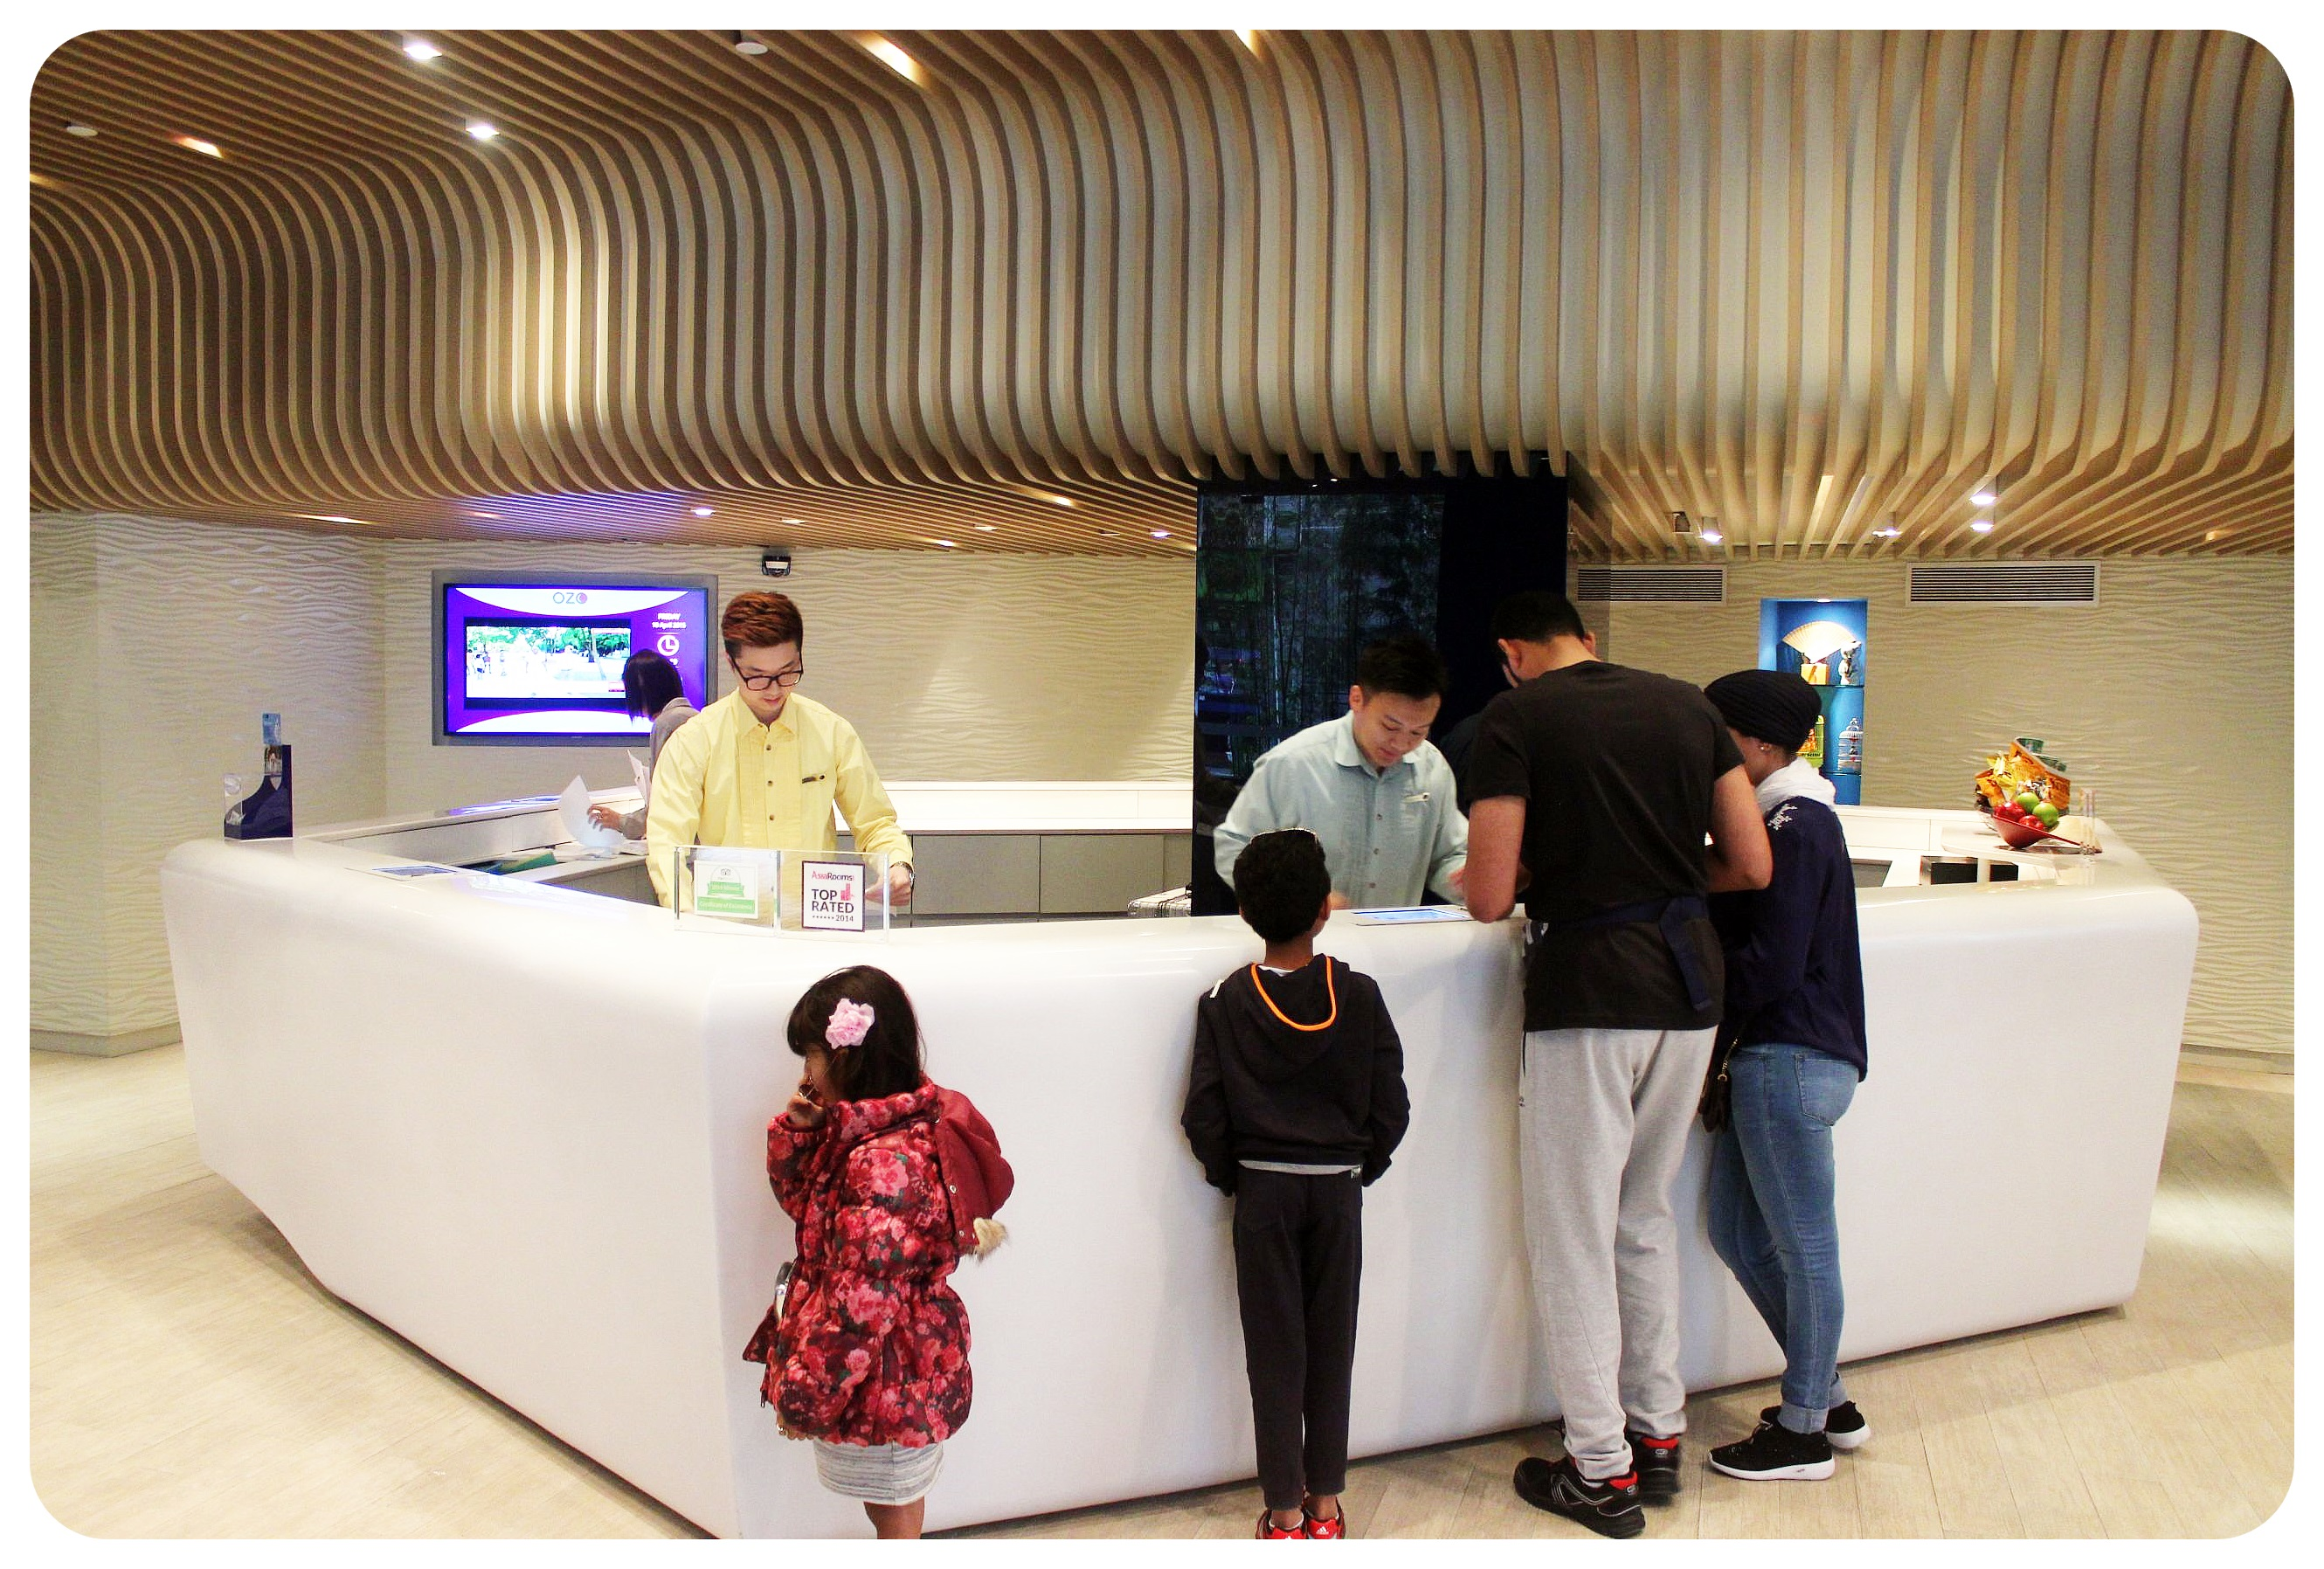 ozo wesley hong kong check-in